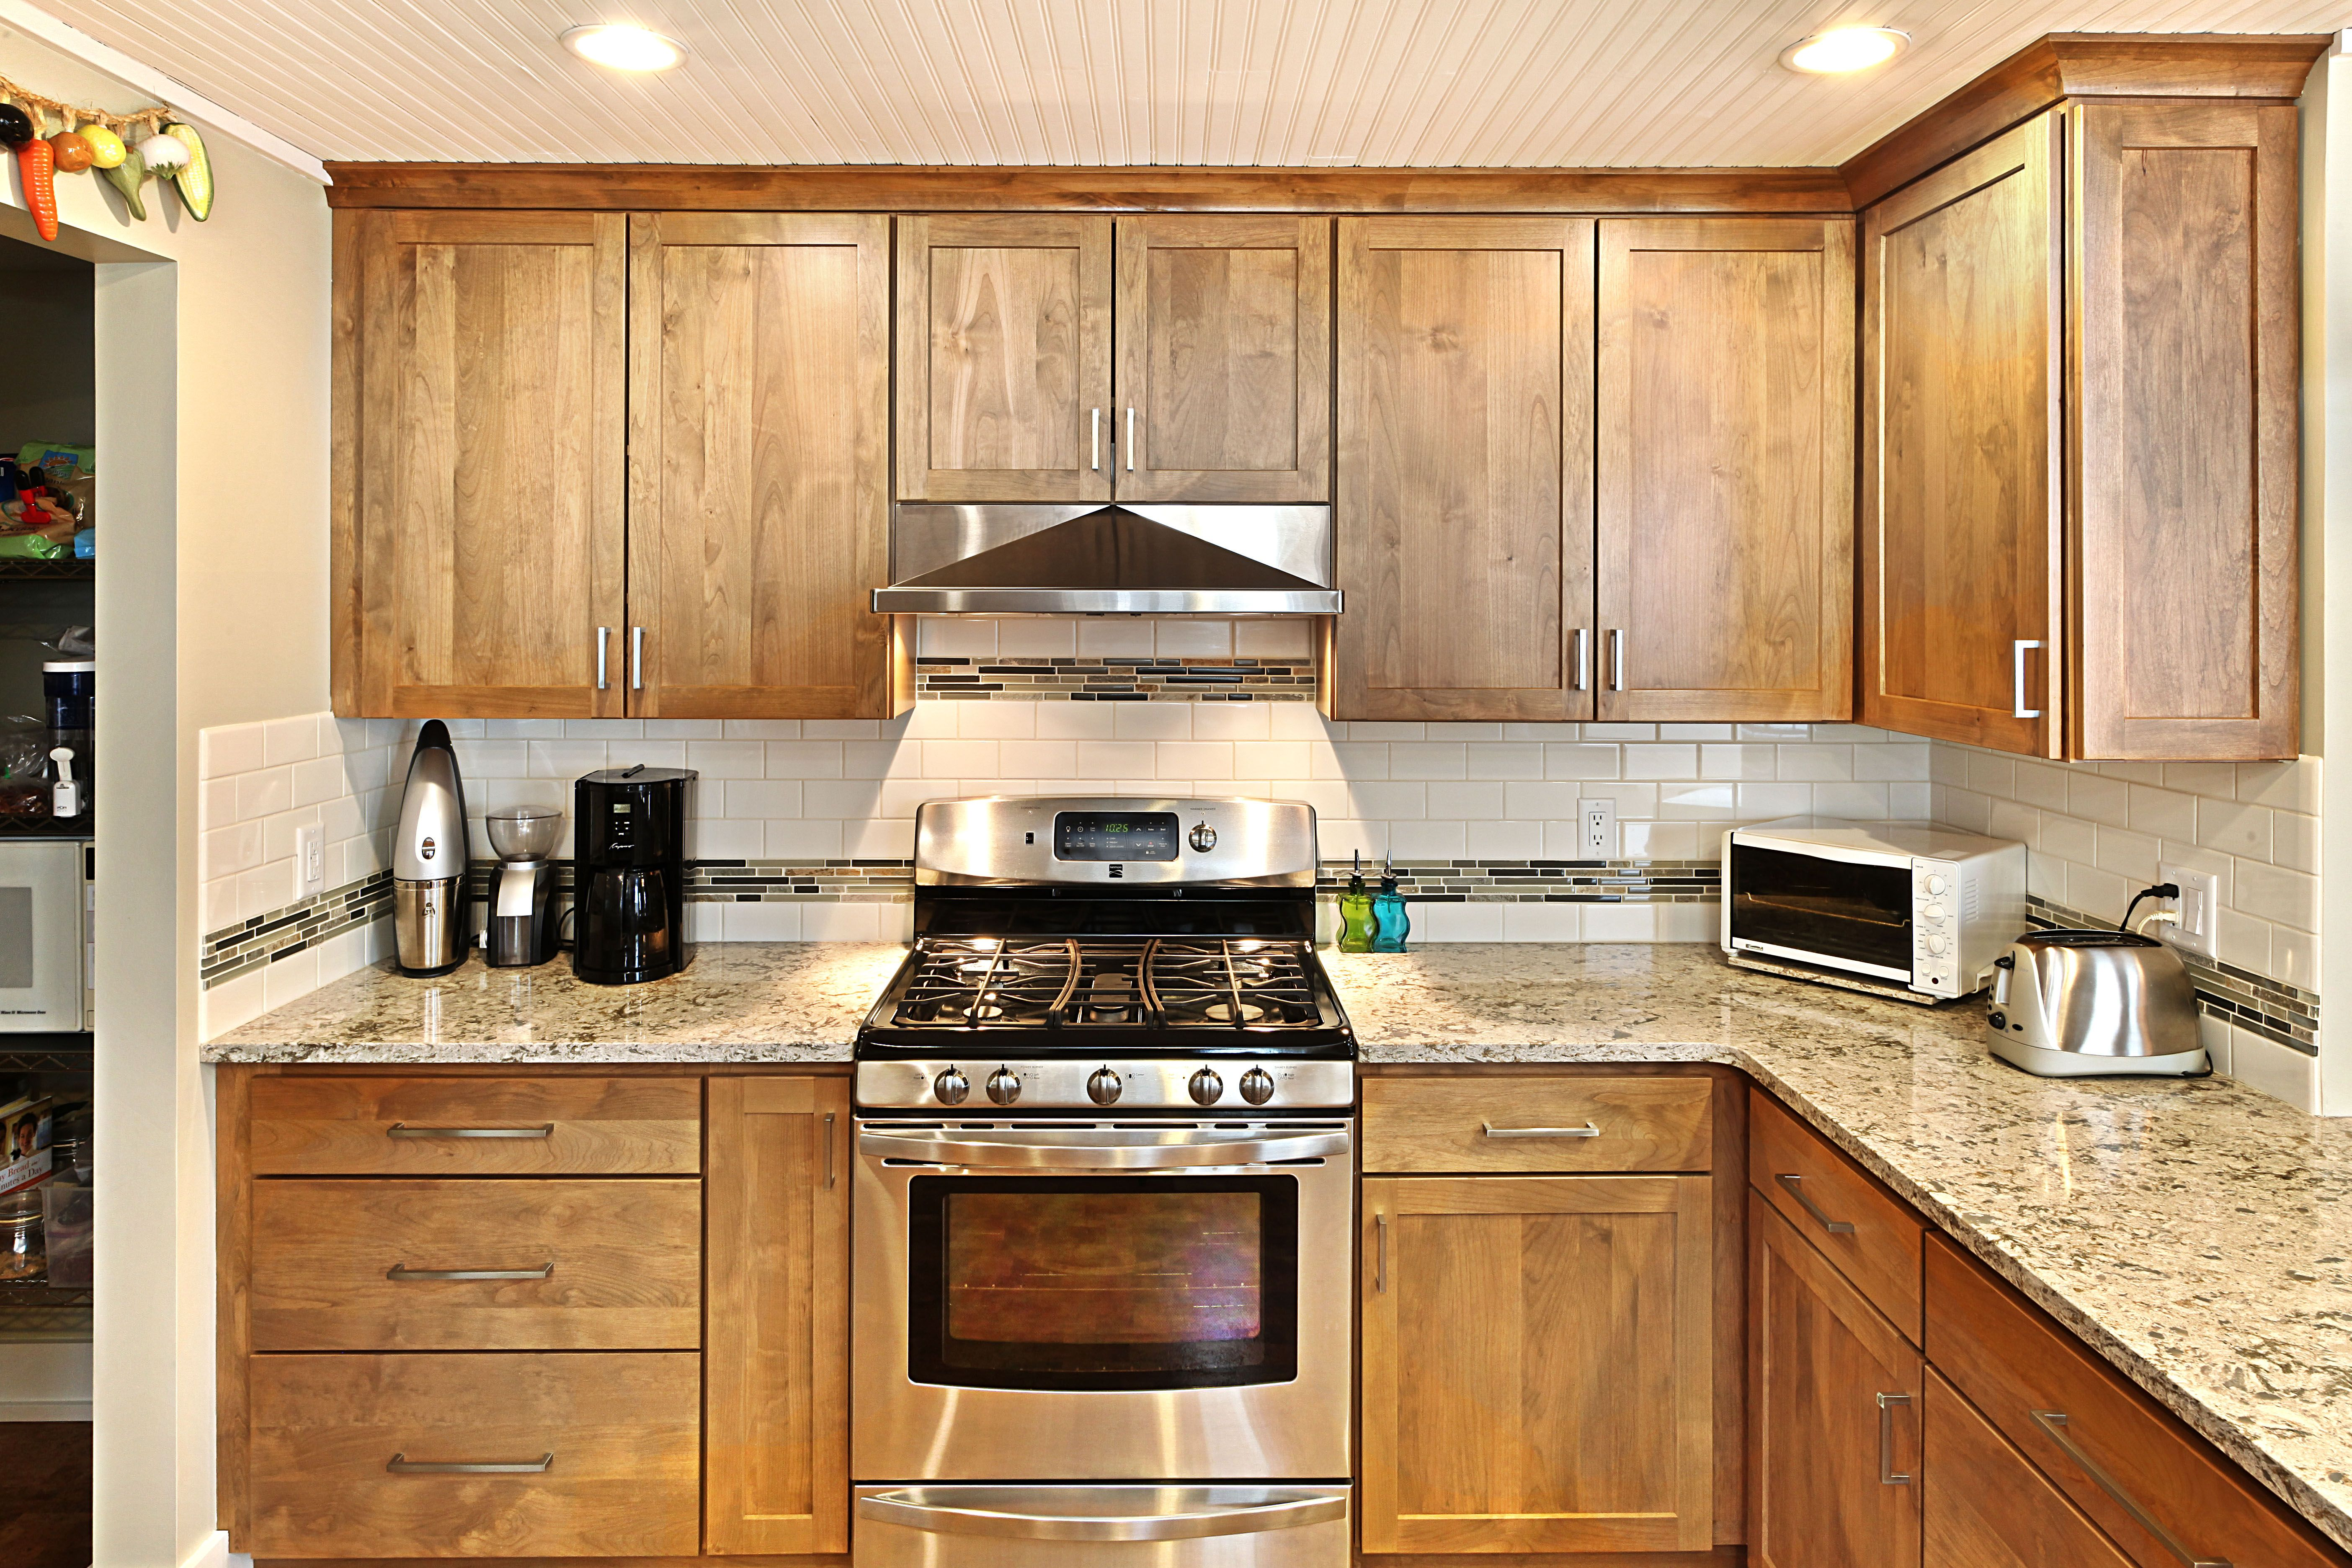 Kitchen Remodel In Suttons Bay, MI. Designed By Kristen Myers With Kitchen  Choreography In